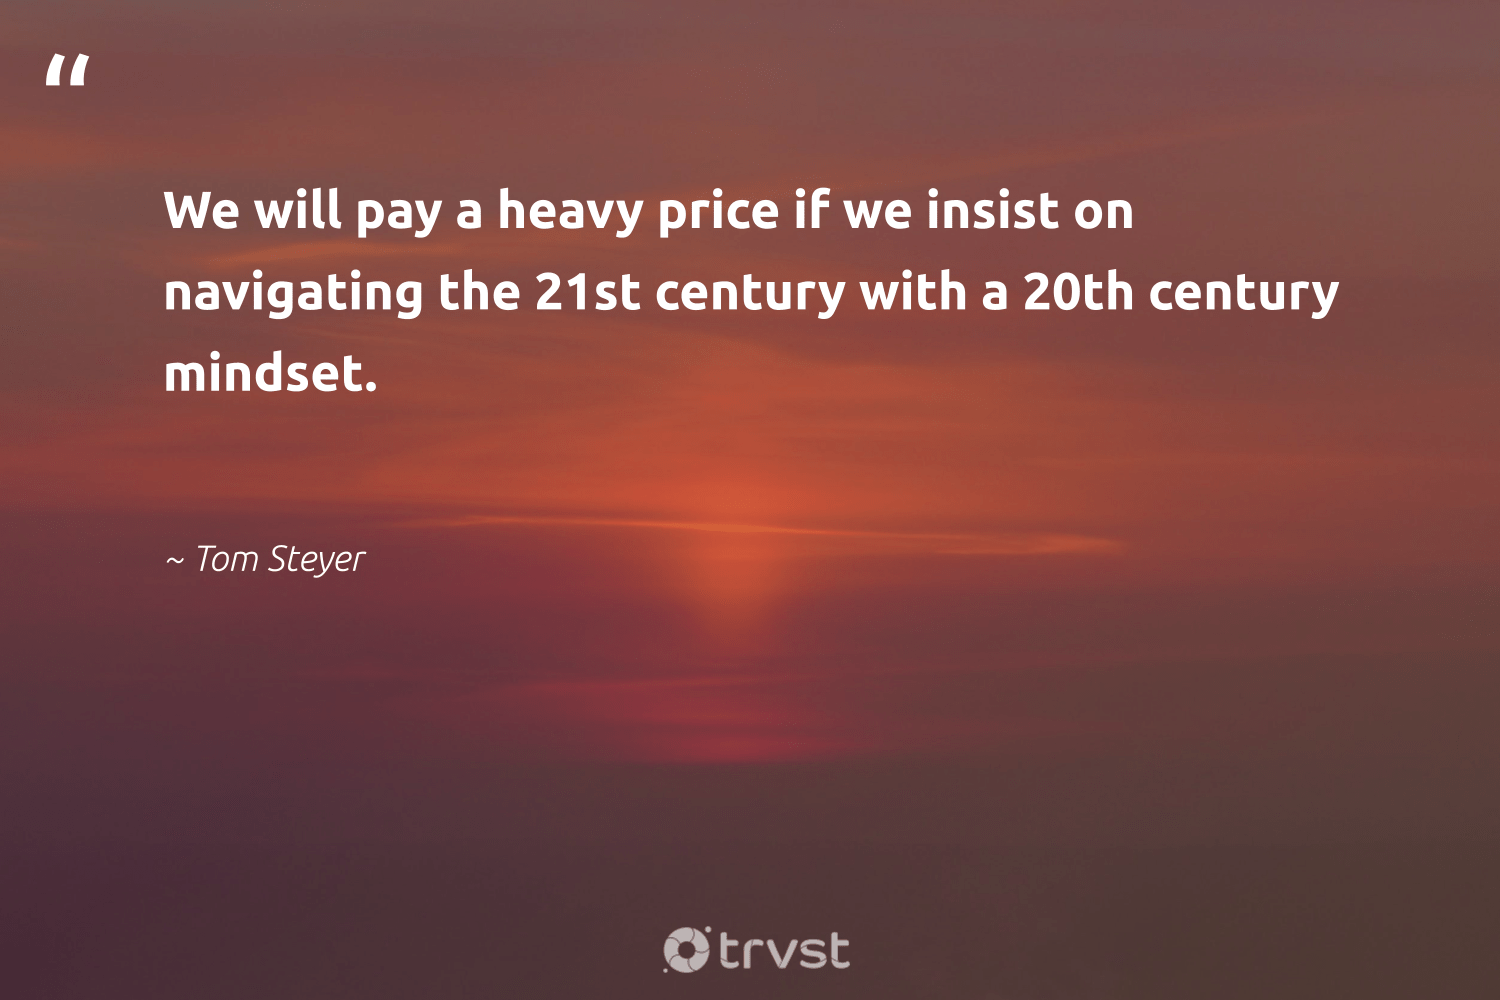 """""""We will pay a heavy price if we insist on navigating the 21st century with a 20th century mindset.""""  - Tom Steyer #trvst #quotes #mindset #positivity #togetherwecan #changemakers #bethechange #mindful #health #begreat #socialchange #mindfulness"""